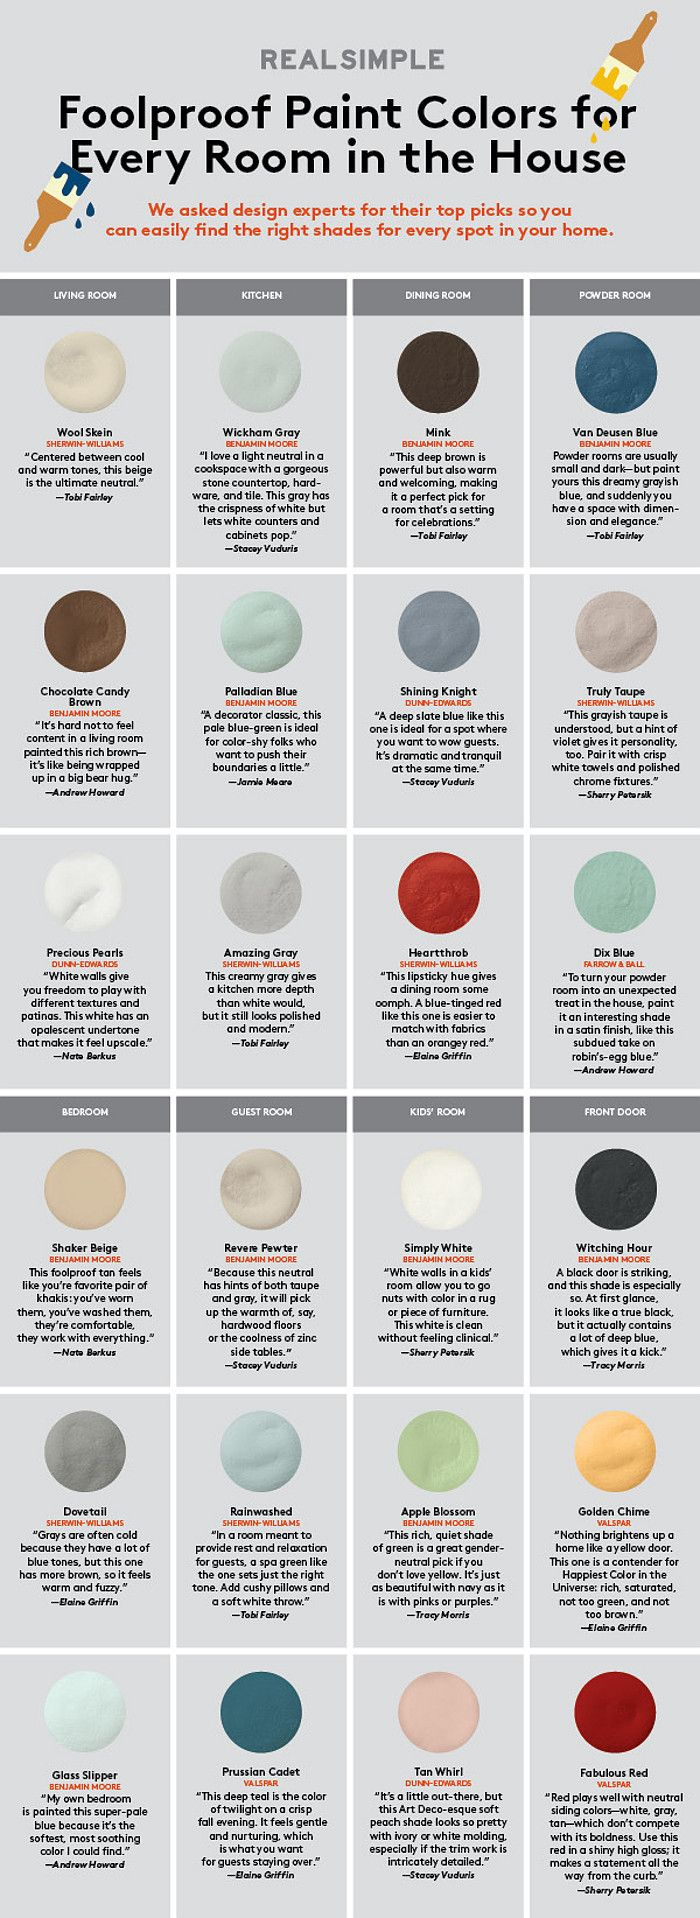 Foolproof paint color for every room in the house. Wool Skein by Sherwin-Williams, Wickham Gray by Benjamin Moore, Mink by Benjamin Moore, Chocolate Candy Brown by Benjamin Moore, Palladian Blue by Benjamin Moore, Shining Knight by Dunn-Edwards, Truly Taupe Sherwin Williams, Precious Pearl by Dunn Edwards, Amazing Gray by Sherwin-Williams, Heartthrob by Sherwin-Williams, Shaker Beige by Benjamin Moore, Revere Pewter by Benjamin Moore, Simply White by Benjamin Moore, Dovetail by…